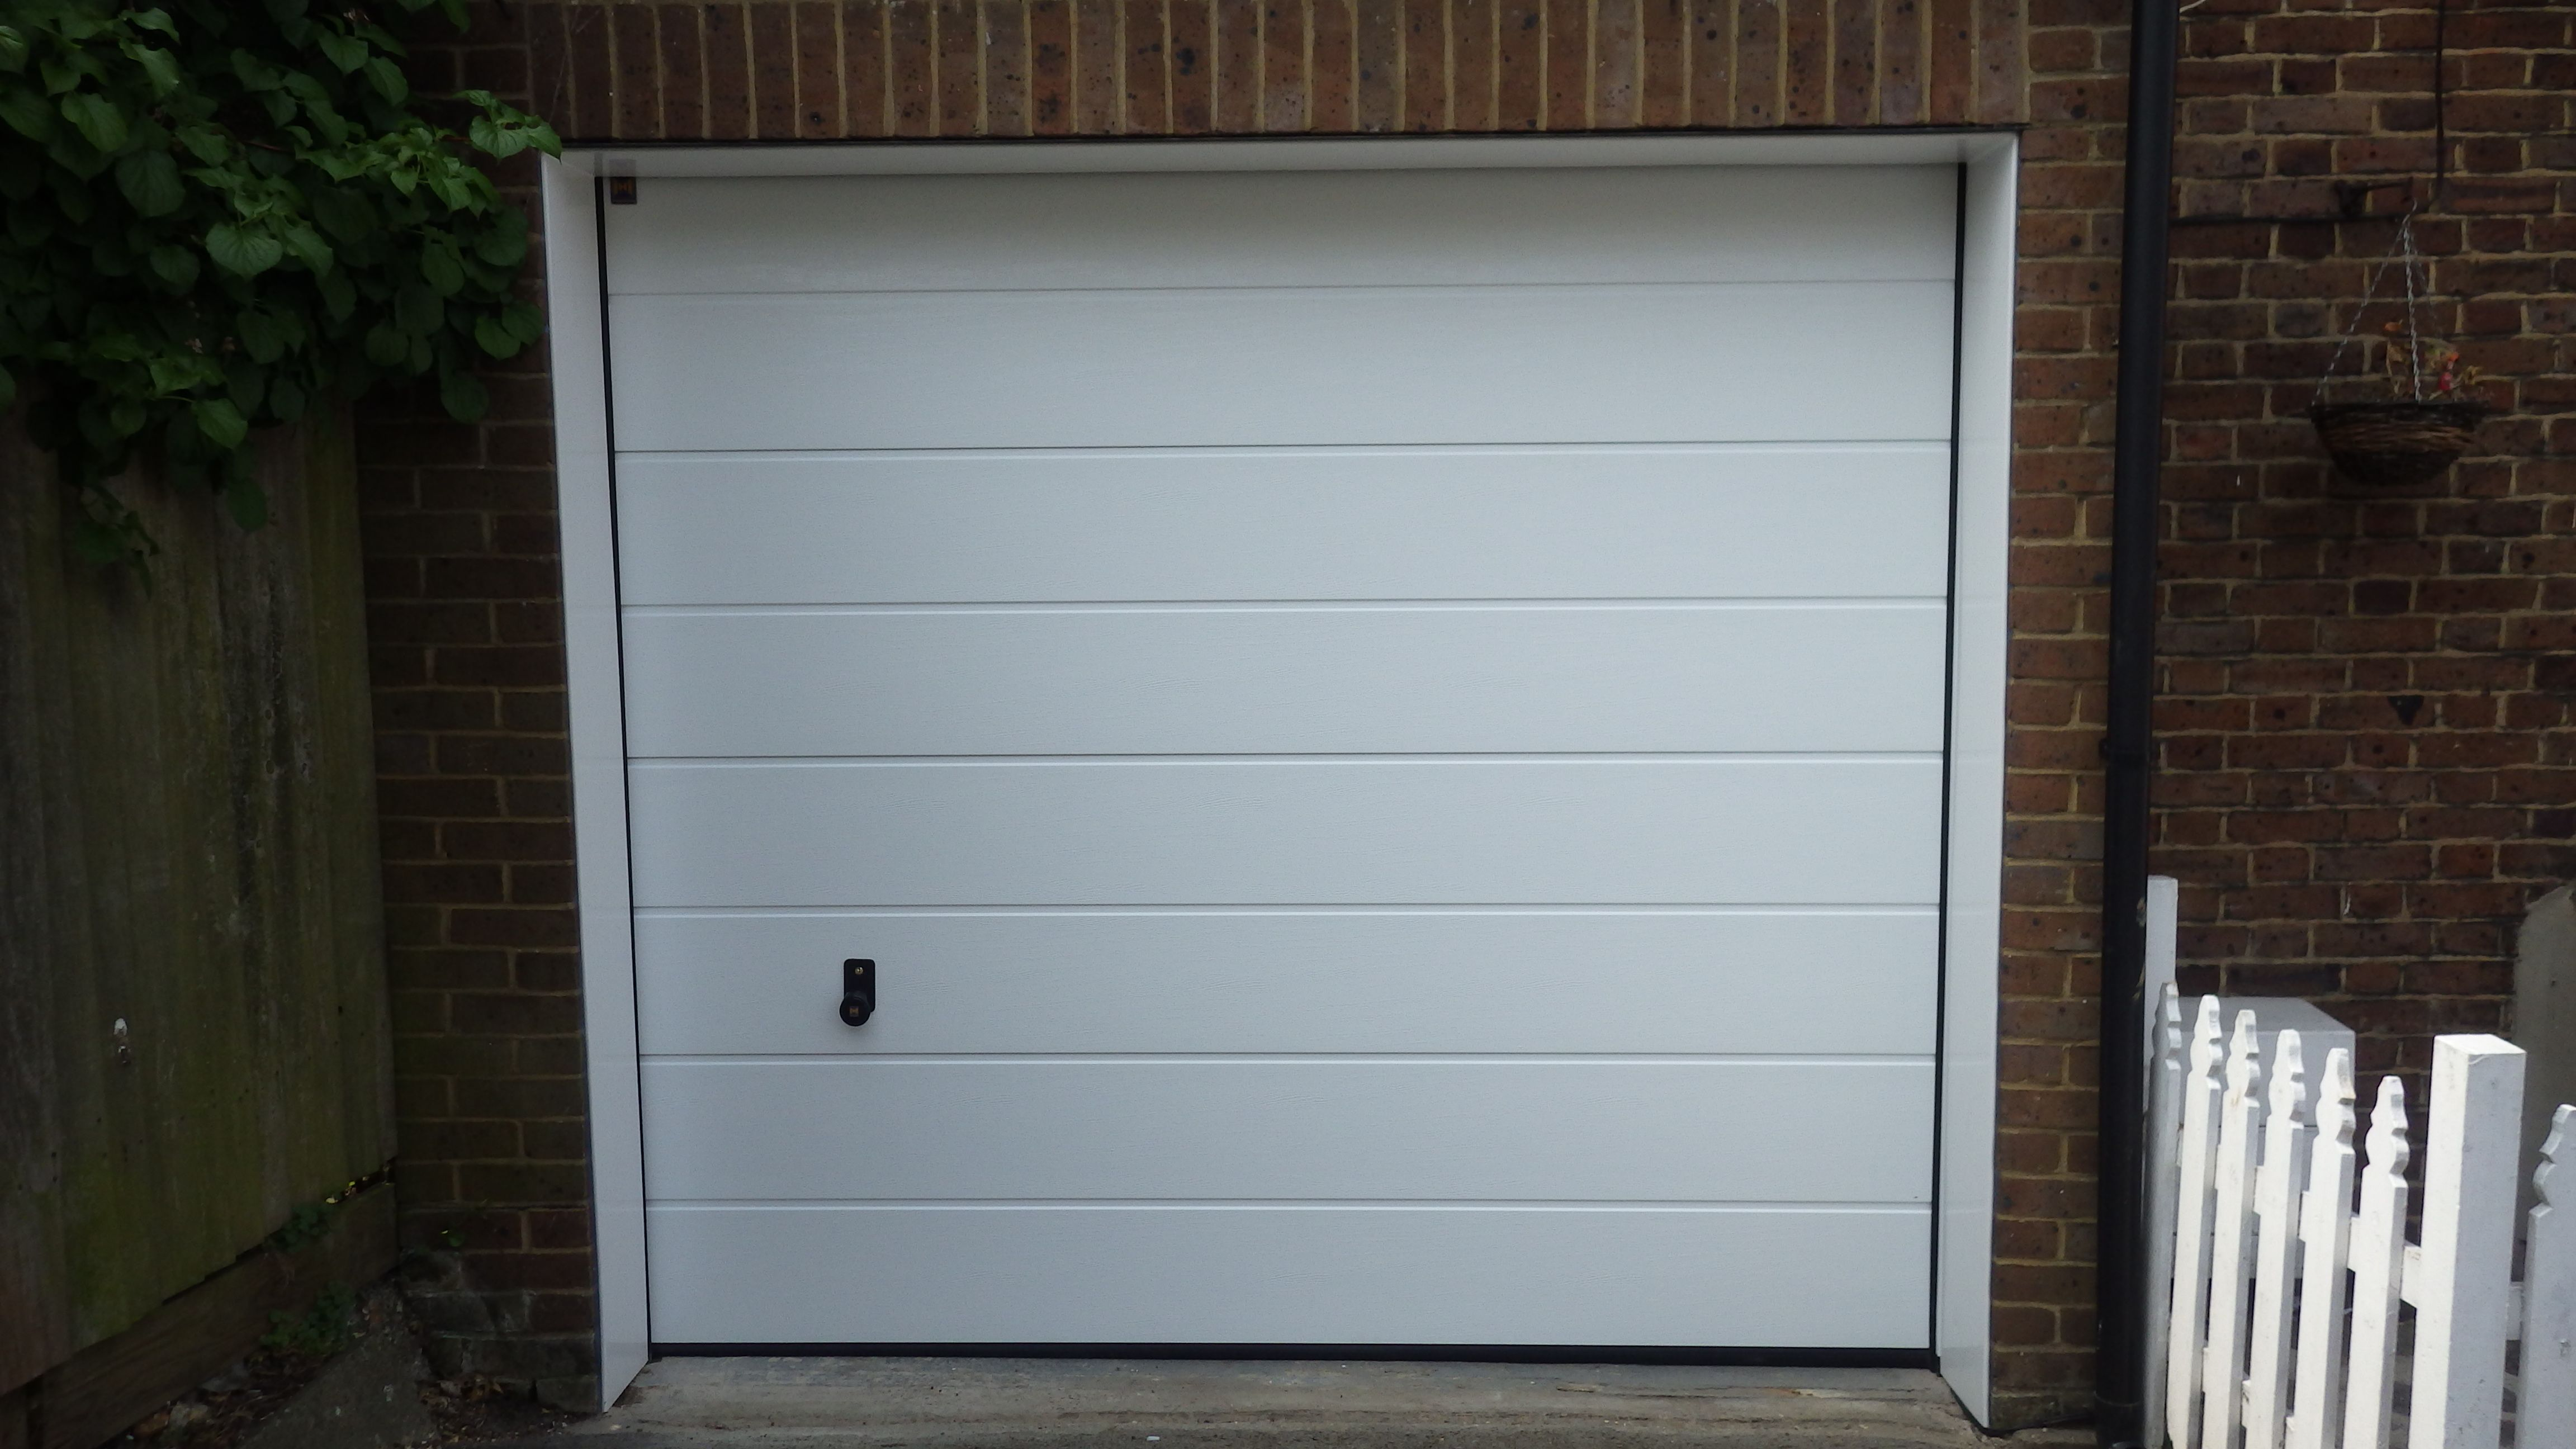 Doors and sidelights matching window on front and black onduline roof - Find This Pin And More On Hormann Sectional Garage Doors